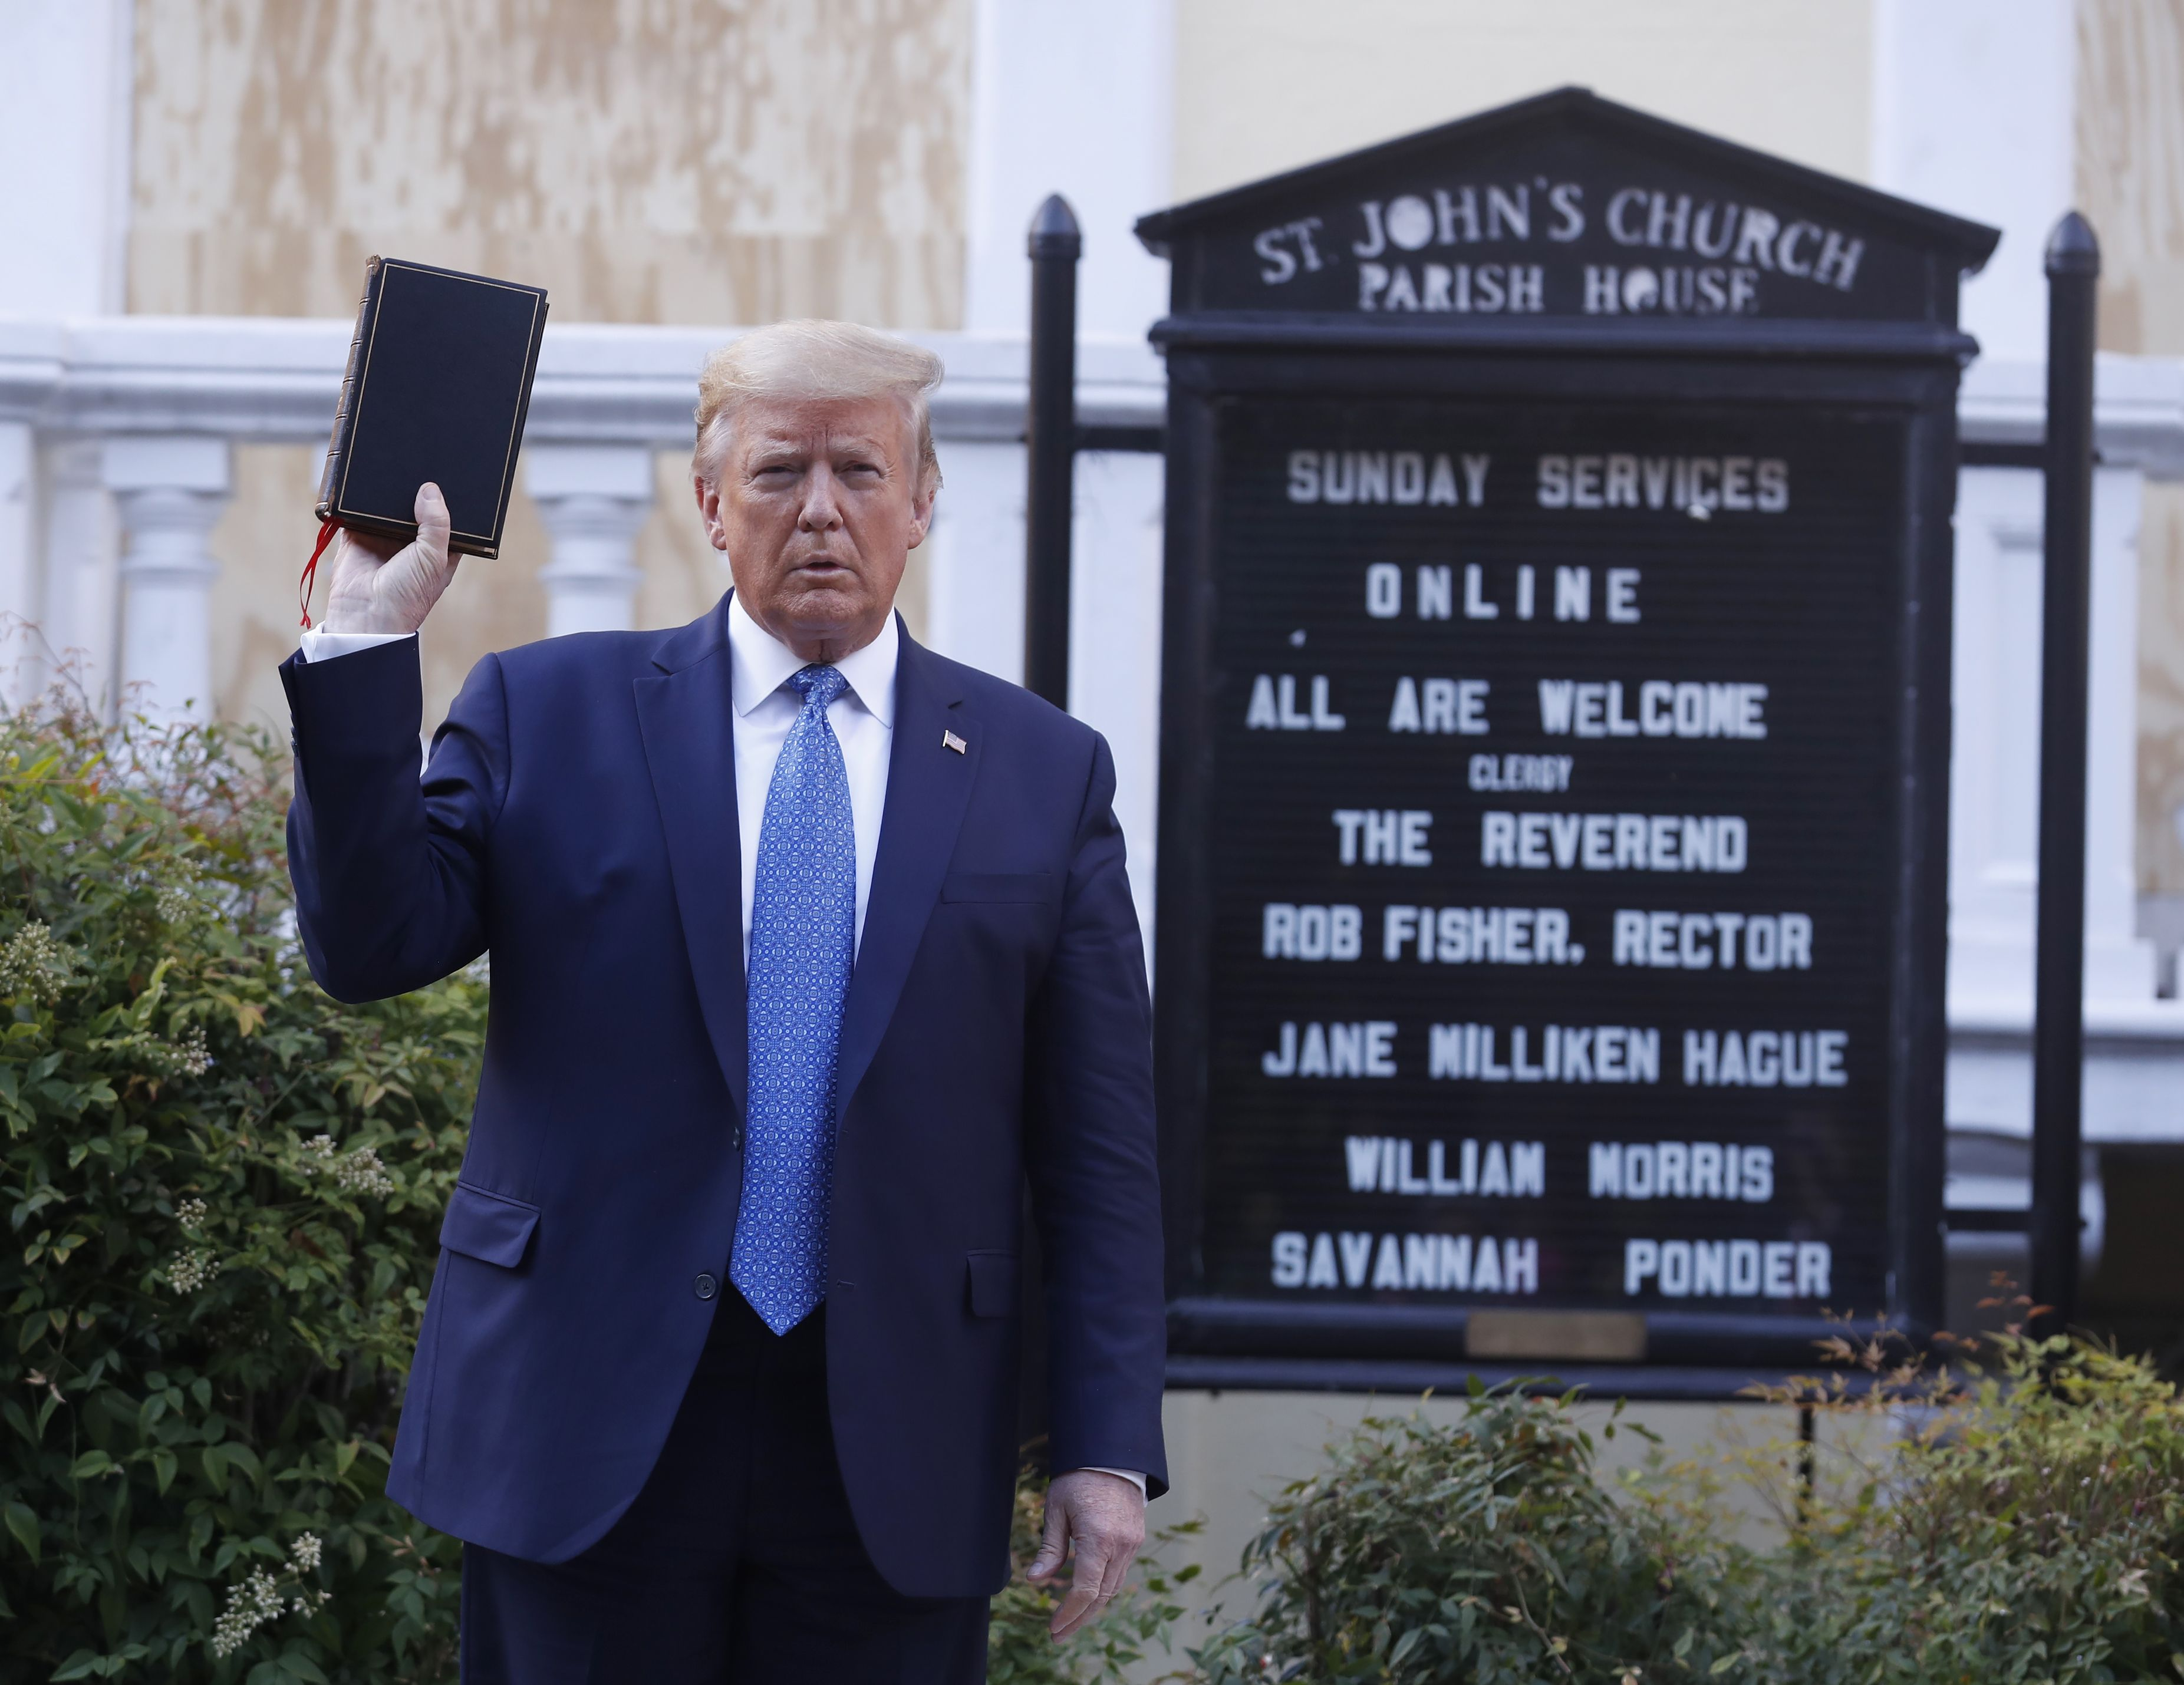 'I'm Outraged': D.C. Bishop Sounds Off On Trump for Using Historic Church as 'Prop'